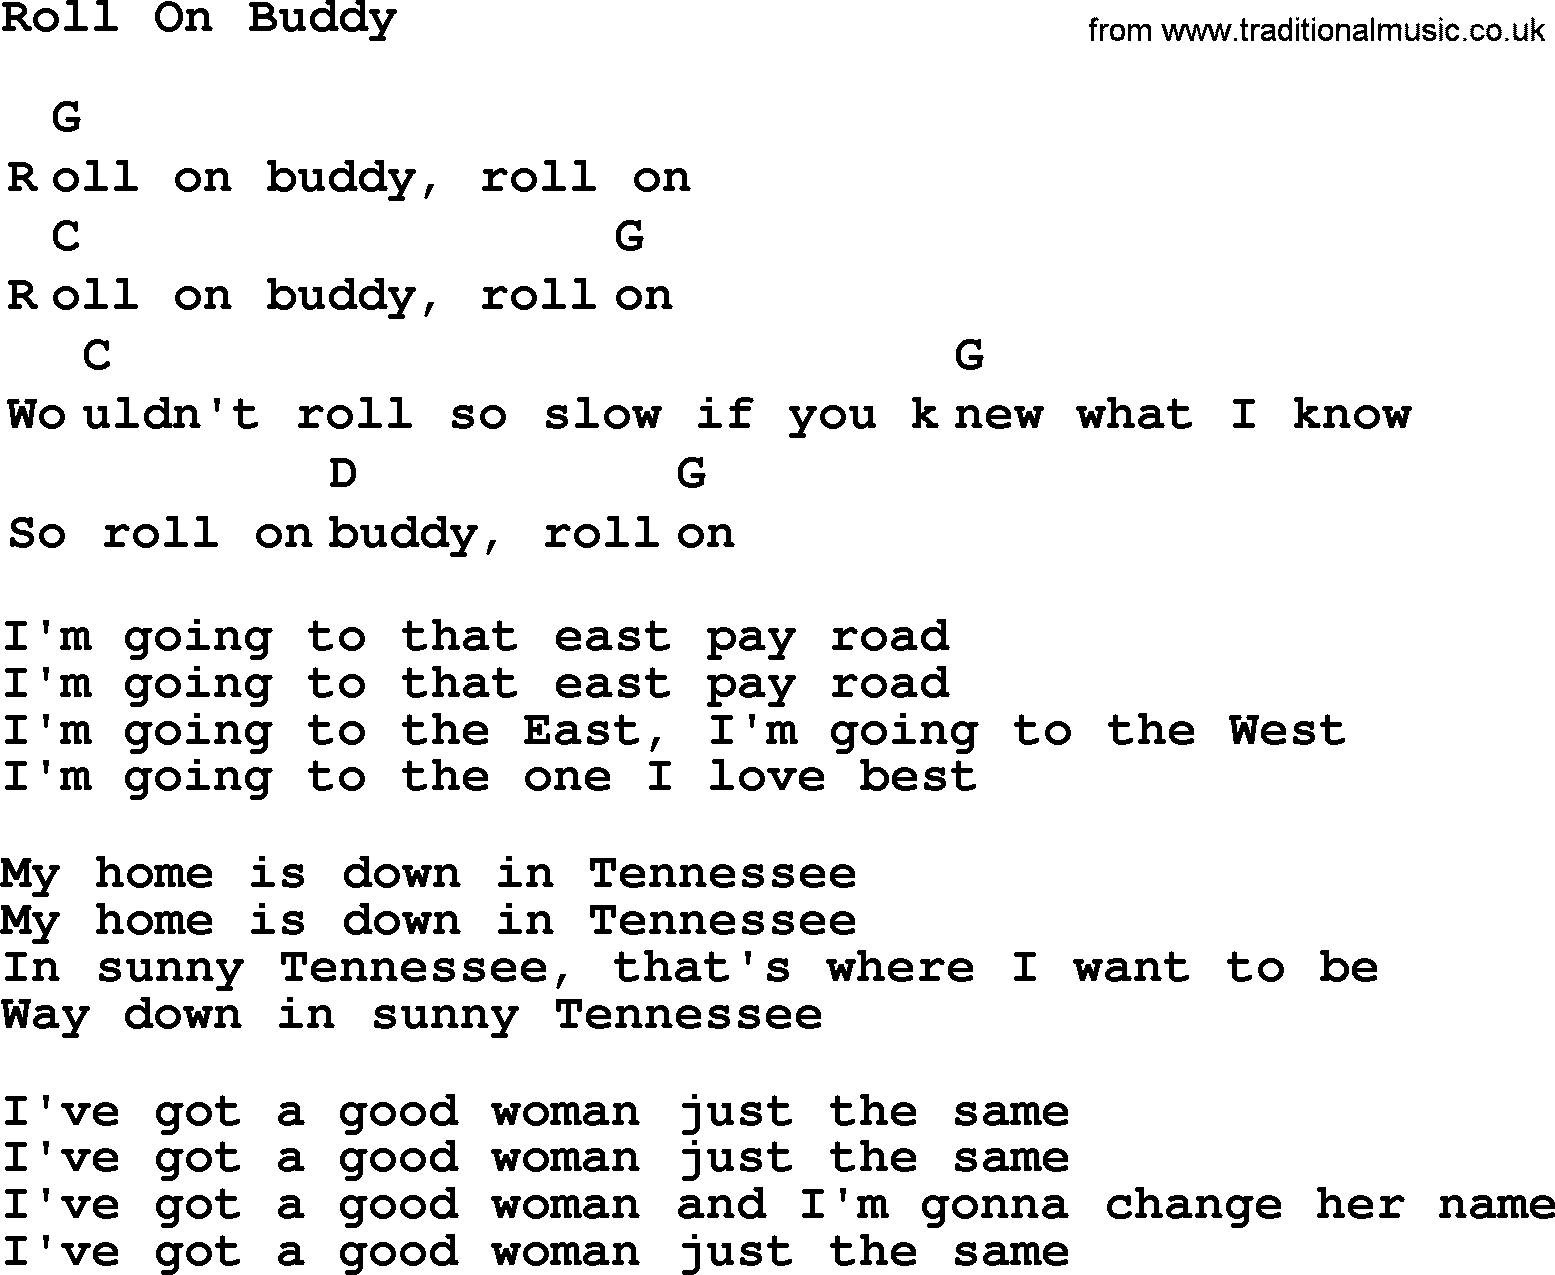 Time Song Lyrics With Chords For When The Roll Is: Top 1000 Folk And Old Time Songs Collection: Roll On Buddy